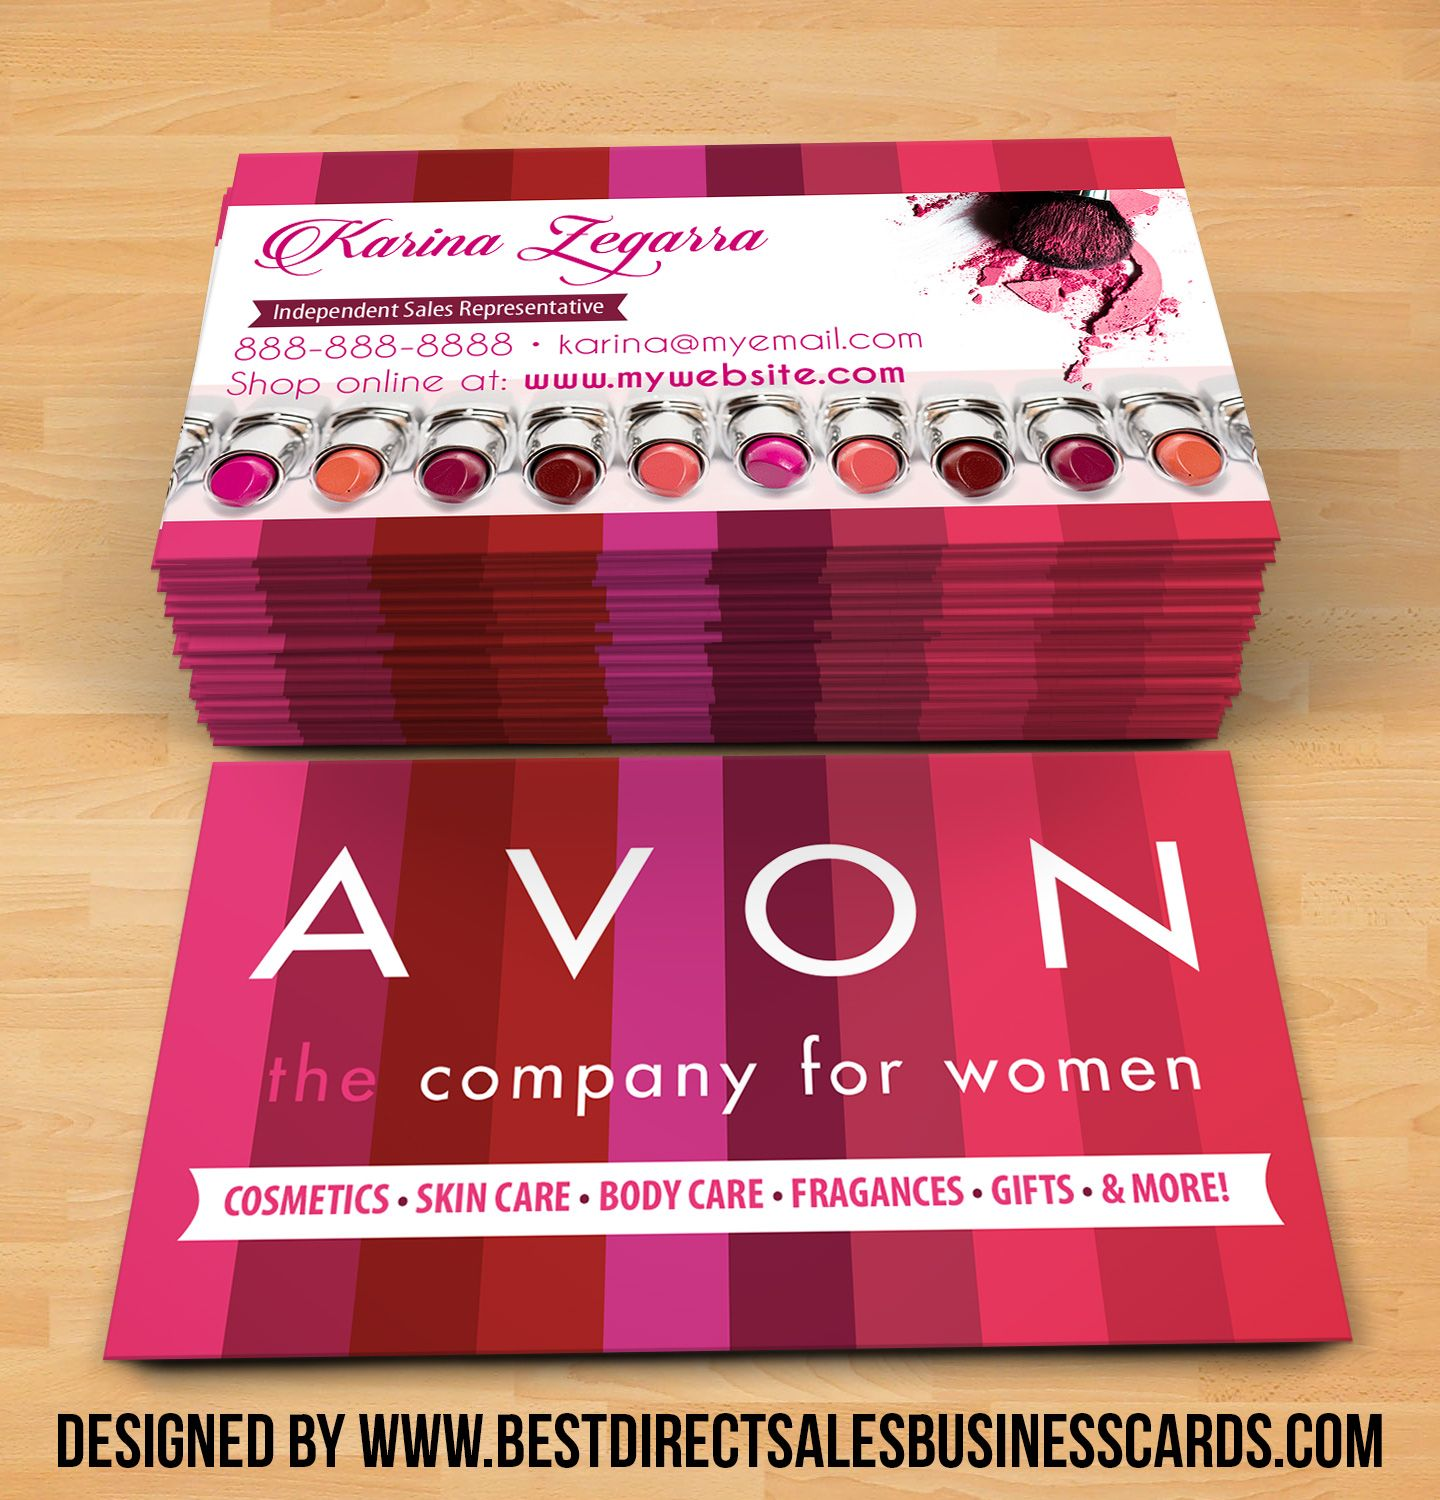 Avon business cards style 1 from kz creative services avon avon business cards style 1 fbccfo Images